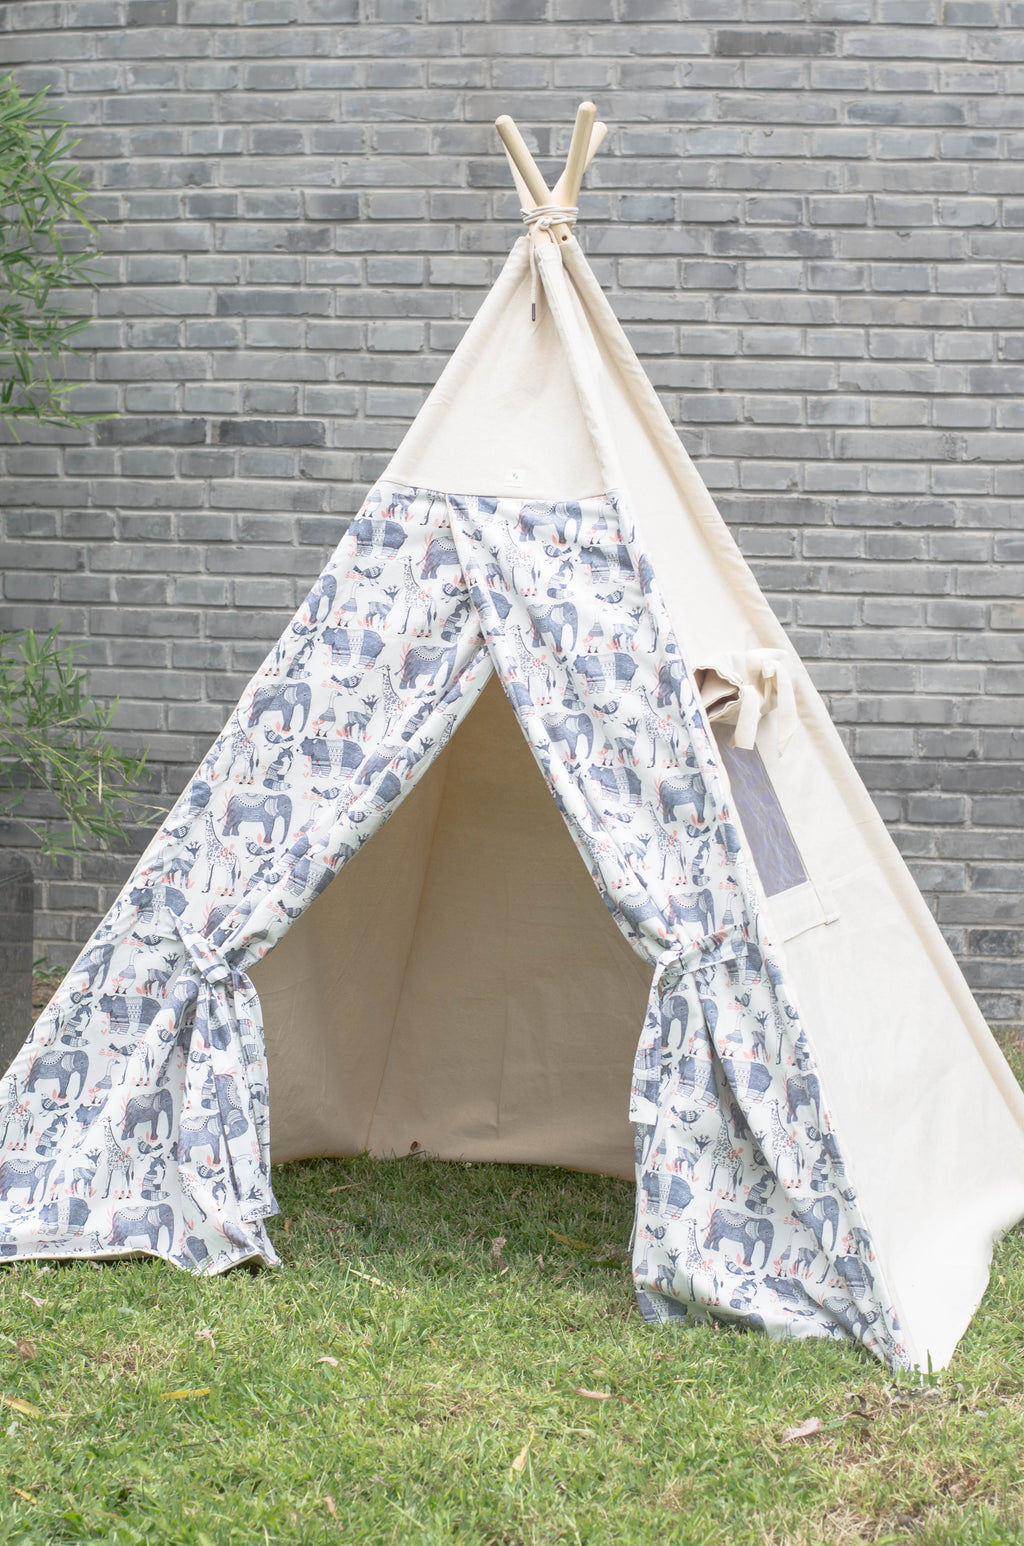 luxe-teepee-kids-teepee-animals-print